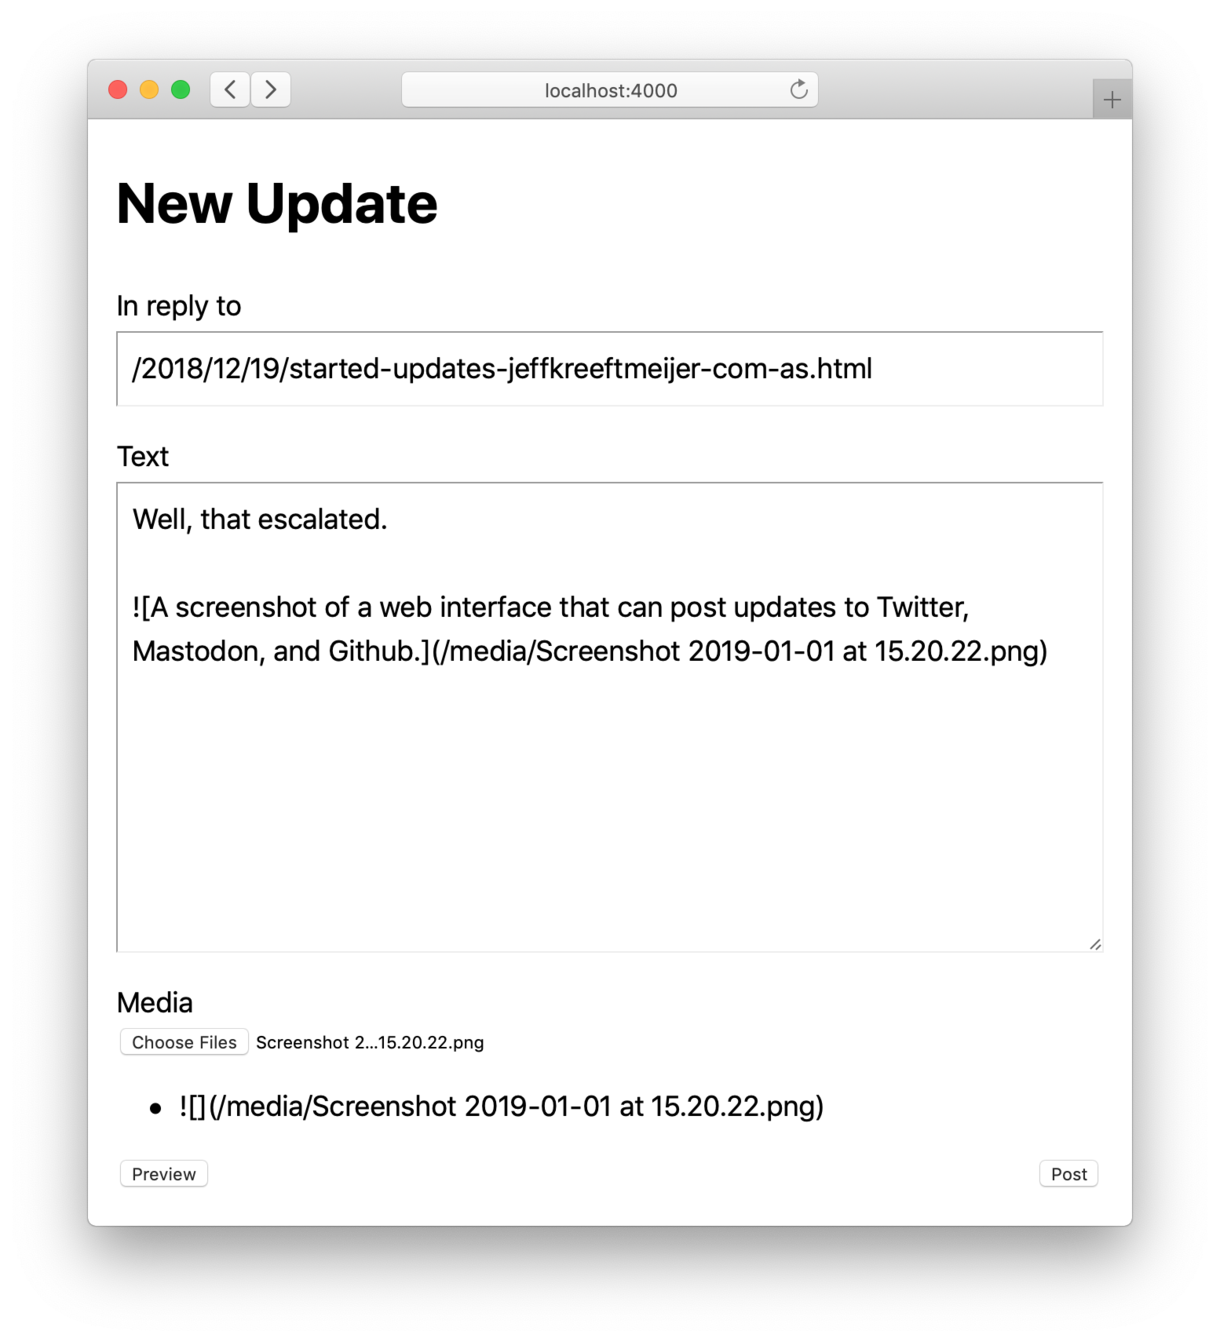 A screenshot of a web interface that can post updates to Twitter, Mastodon, and Github.